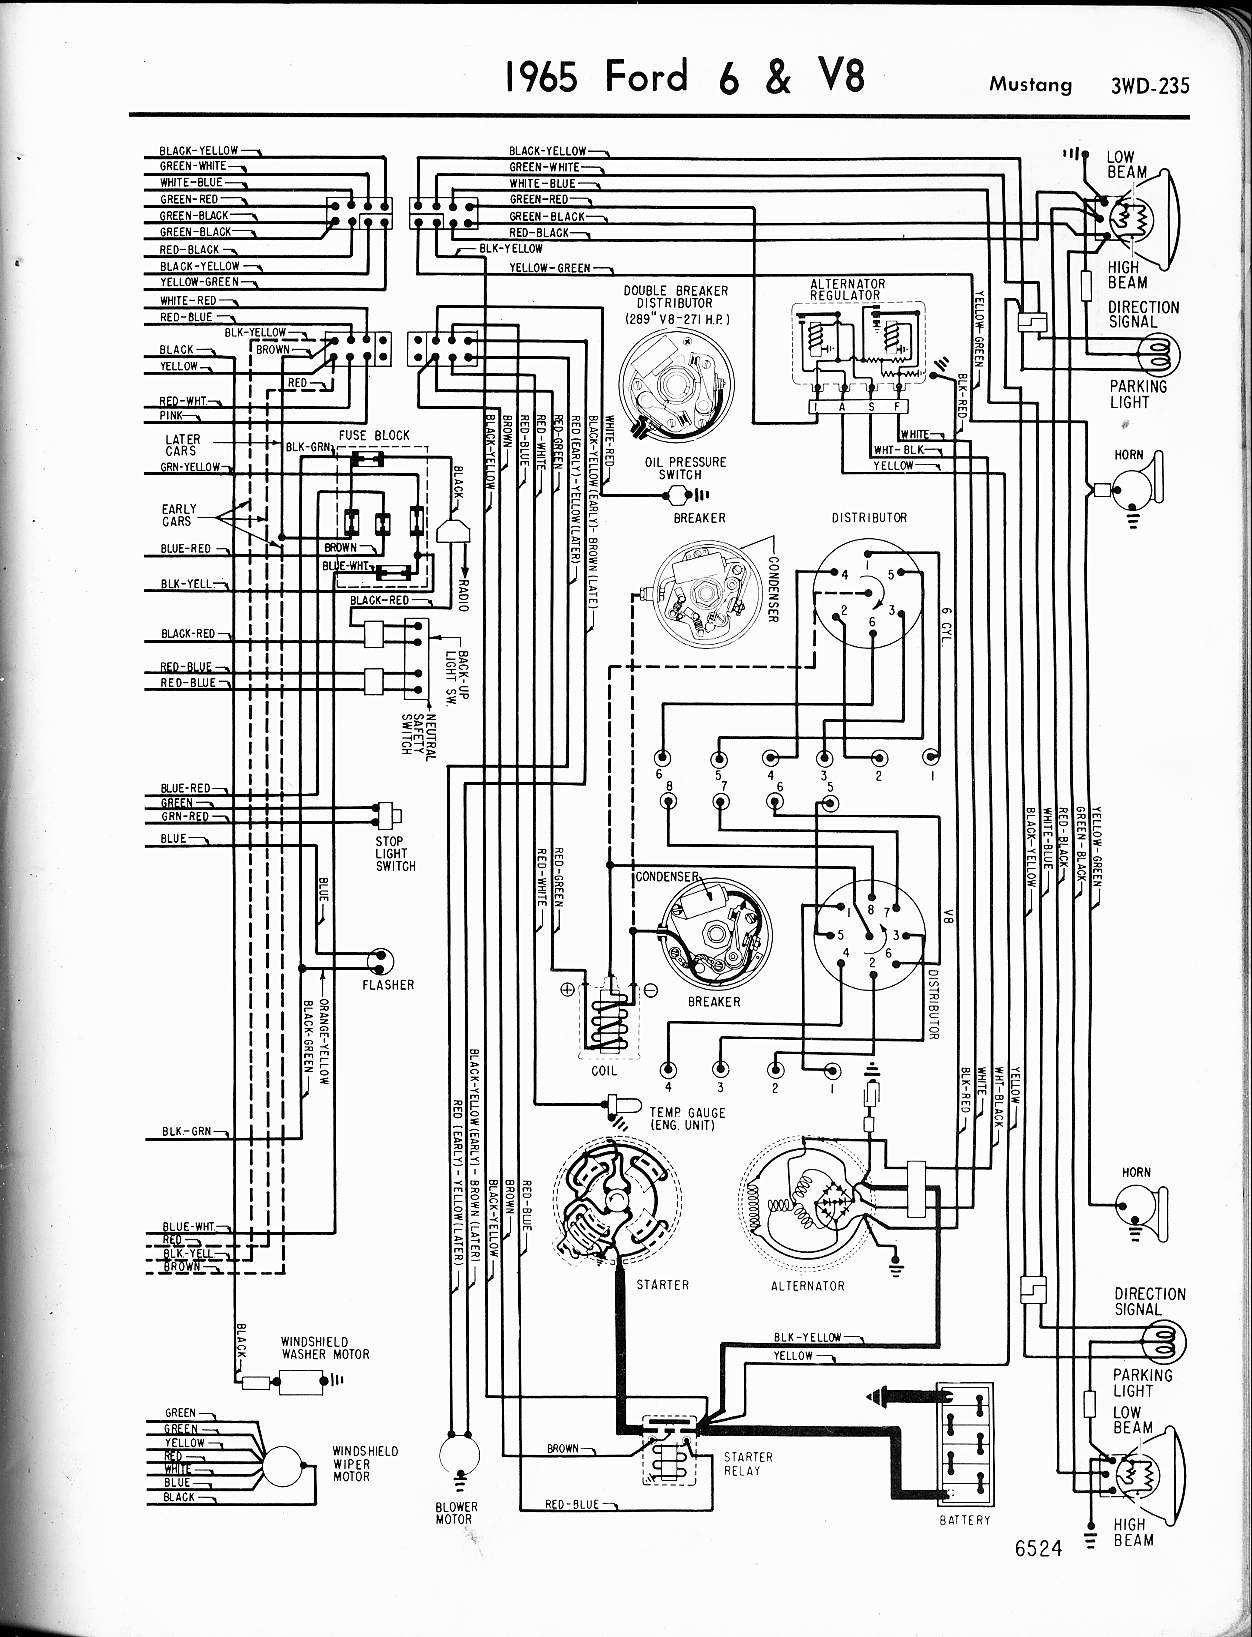 1965_mustang_wiring_2 69 mustang wiring diagram 1969 ford f100 wiring diagram \u2022 wiring 1966 mustang wiring diagram pdf at alyssarenee.co